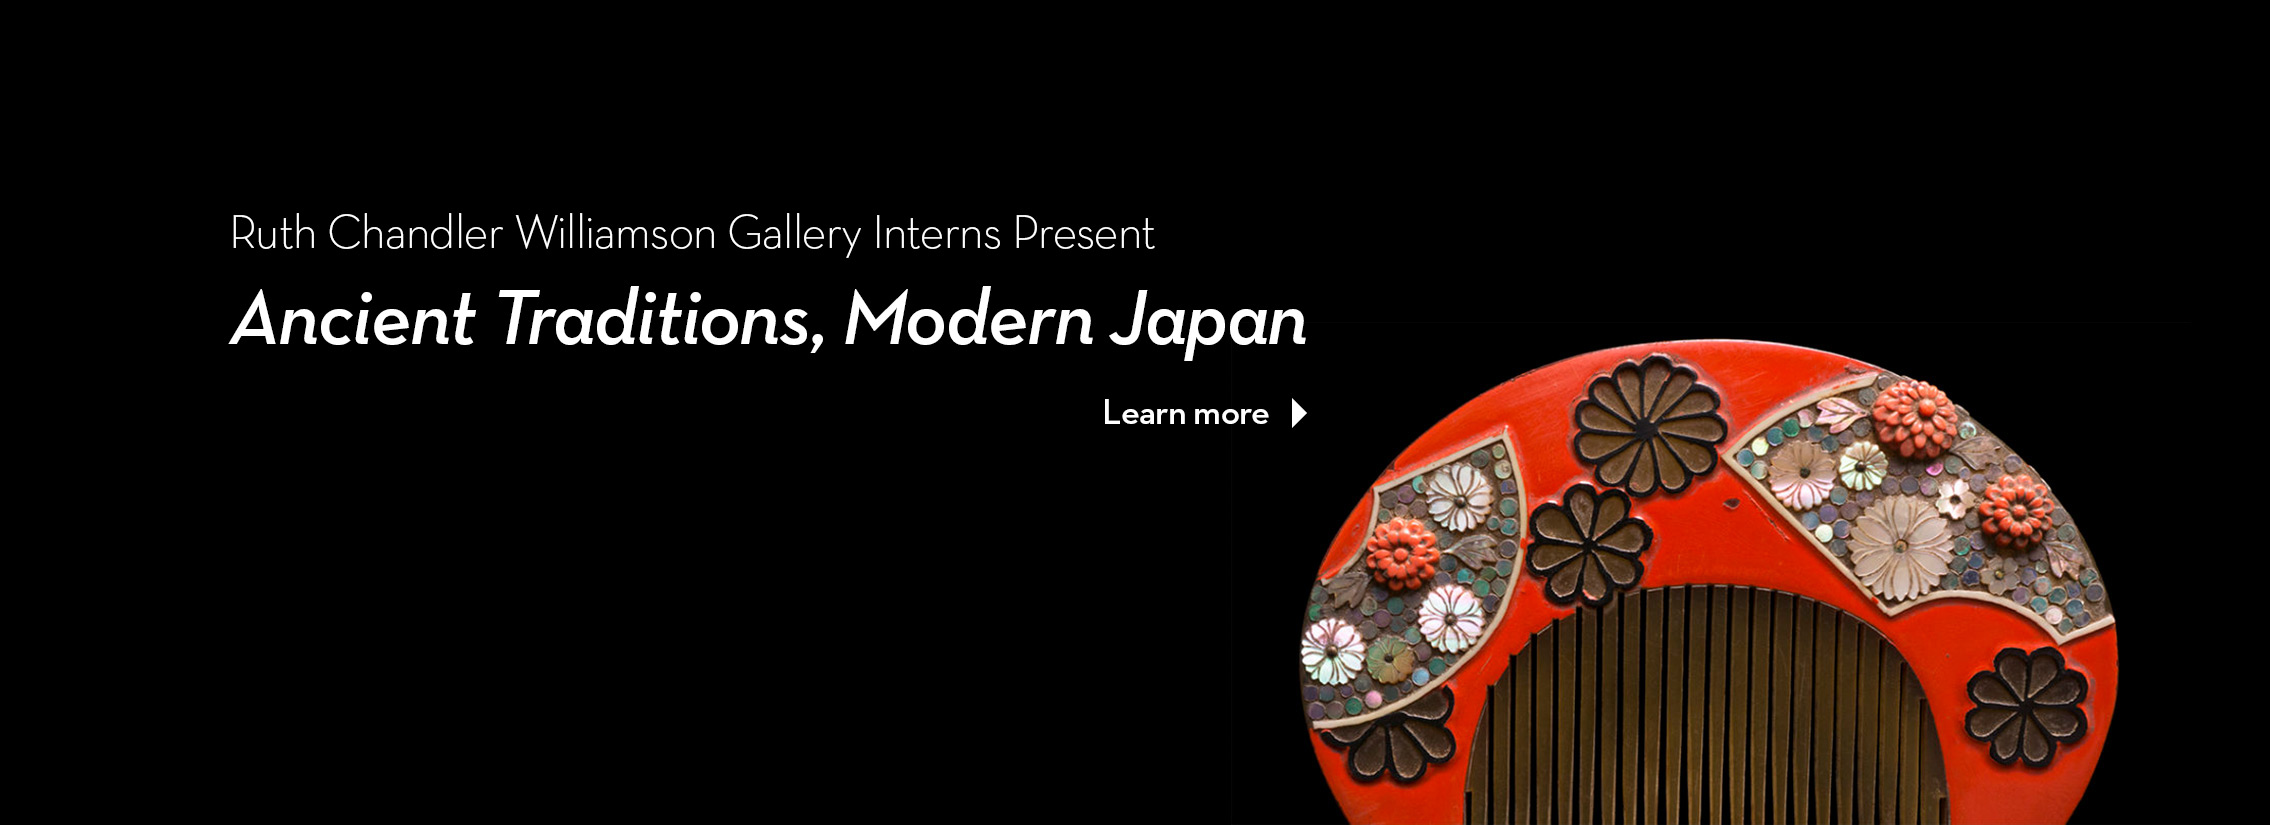 Ruth Chandler Williamson Gallery Interns Present Ancient Traditions, Modern Japan